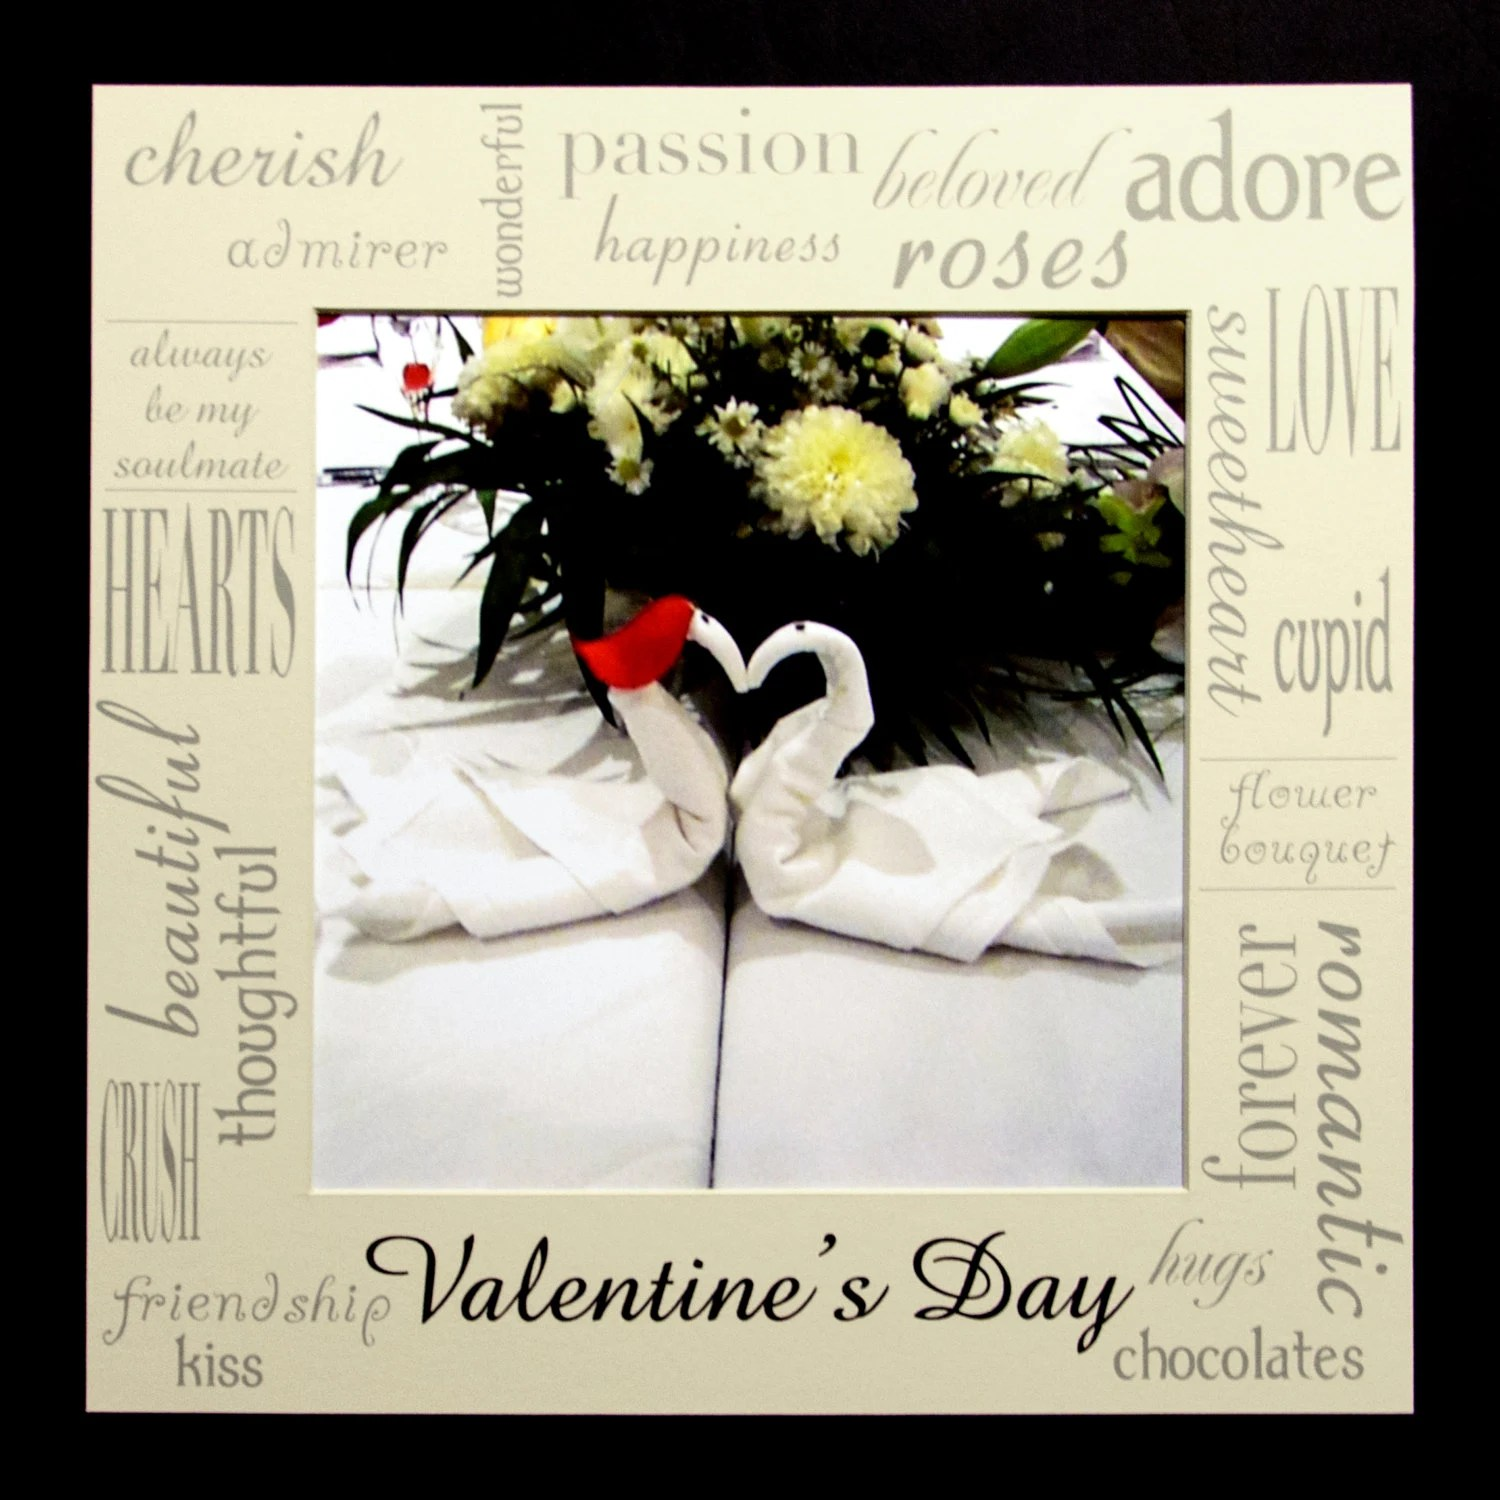 12 X 12 Valentines Day Photo Mat From PlatinumPixs On